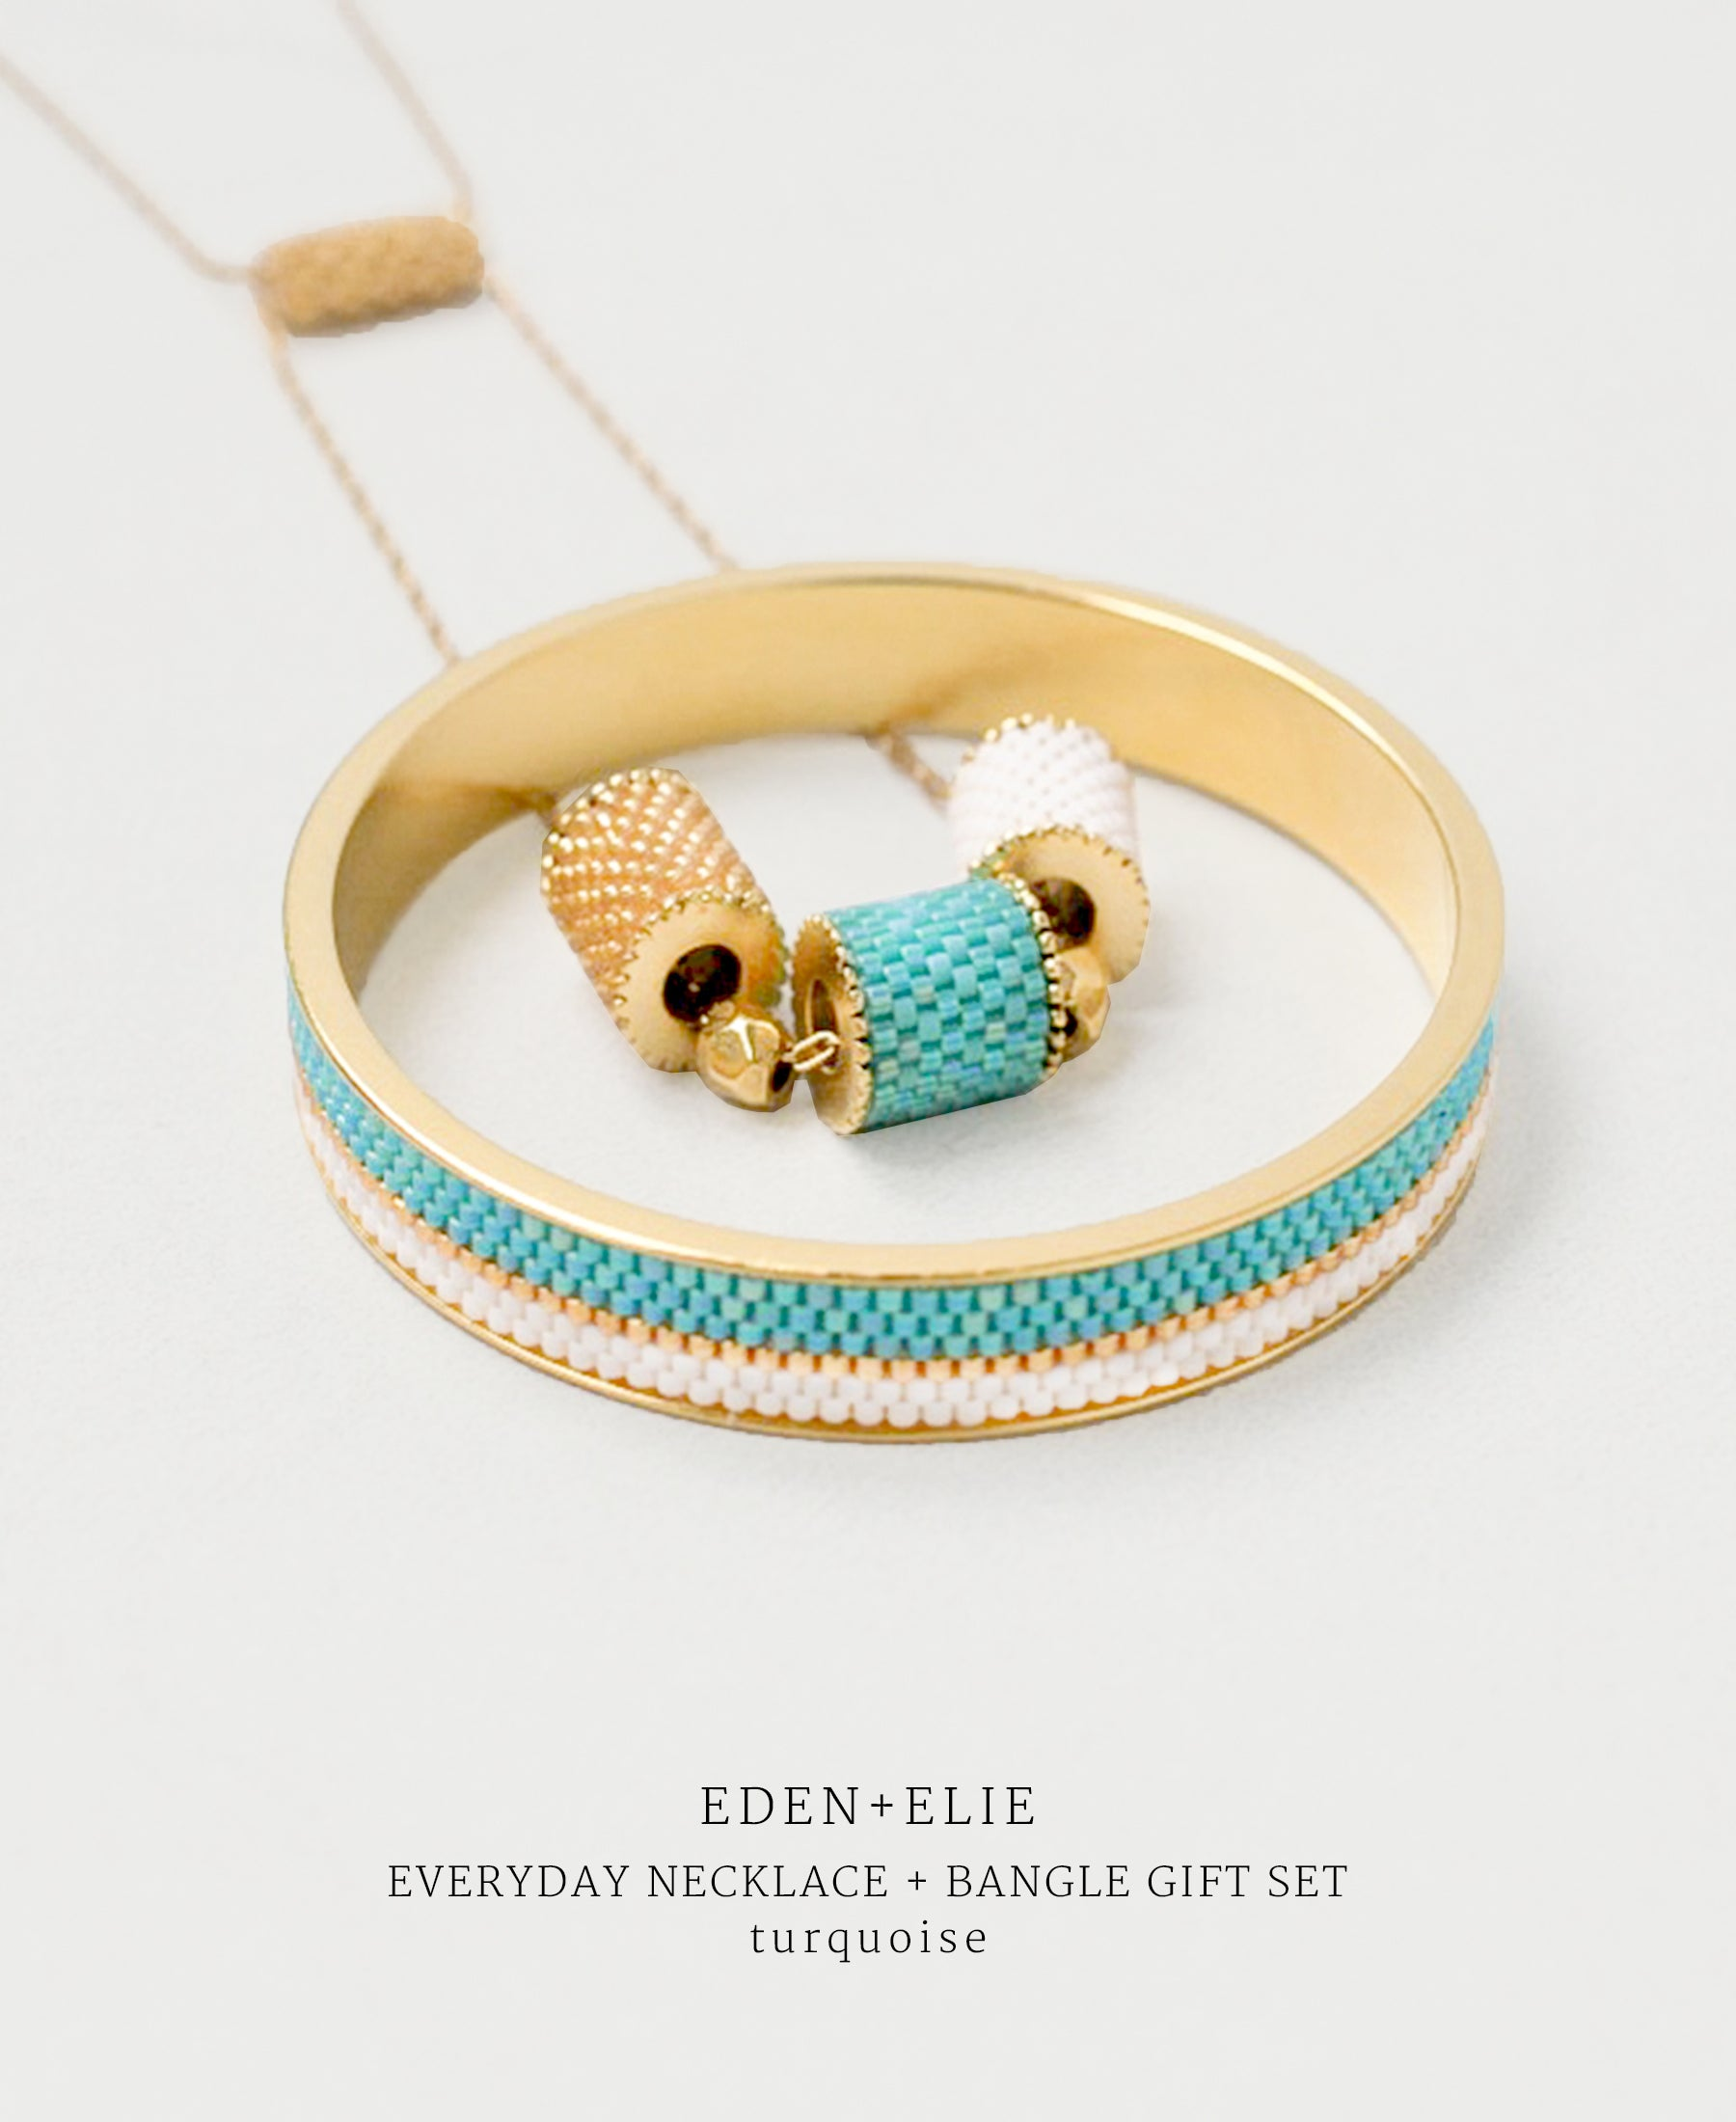 EDEN + ELIE Everyday adjustable length necklace + bangle set - turquoise